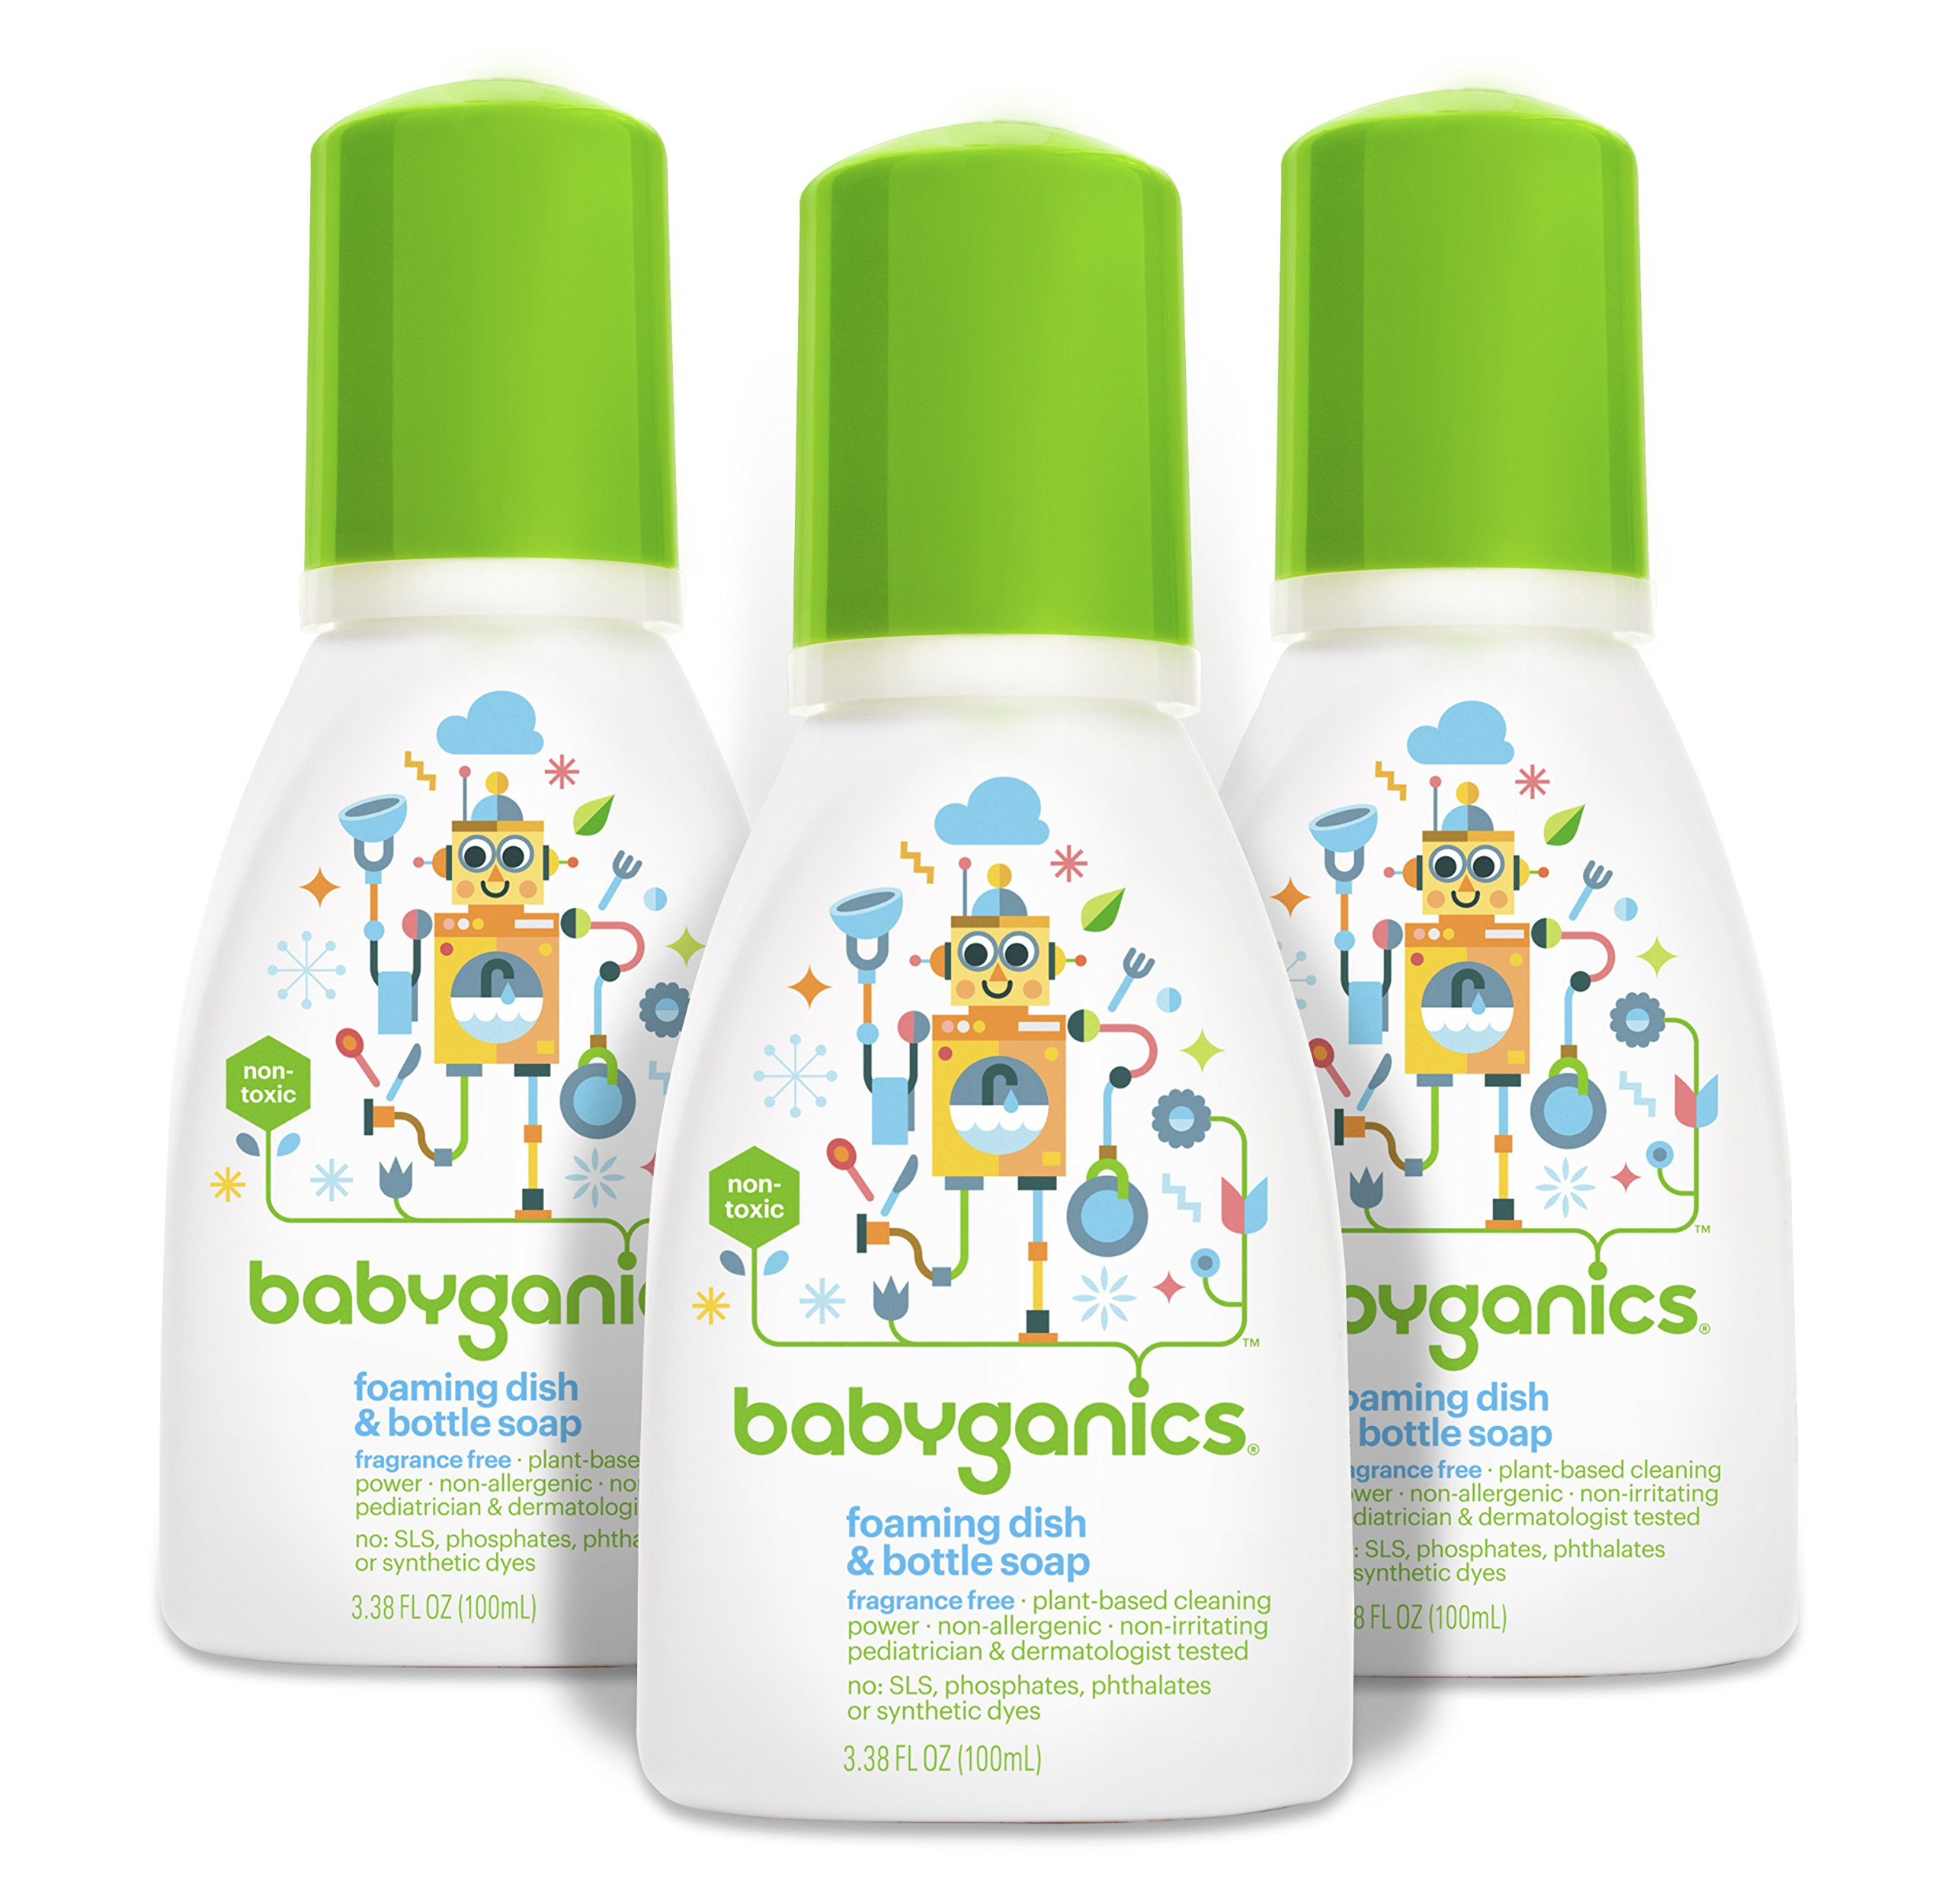 Babyganics Foaming Dish and Bottle Soap, Fragrance Free, On-The-Go 100ml, 3.38 oz.  (Pack of 3), Packaging May Vary by Babyganics